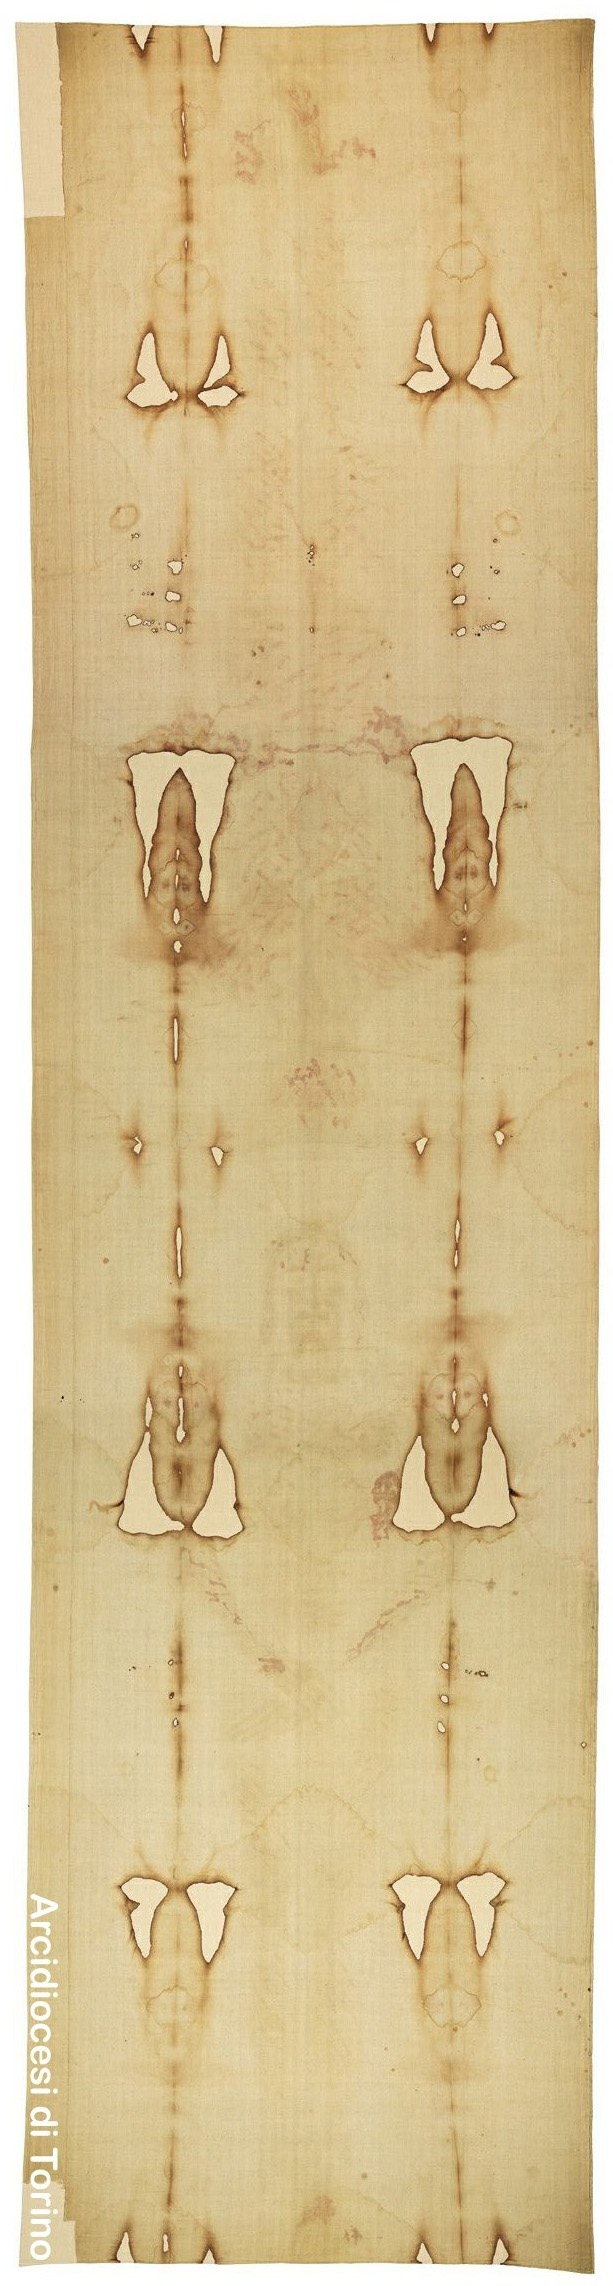 an introduction to the mythology of the shroud of turin Full length negatives of the shroud of turin a poster advertising the 1898 exhibition of the shroud in turin mythology, religion and history.